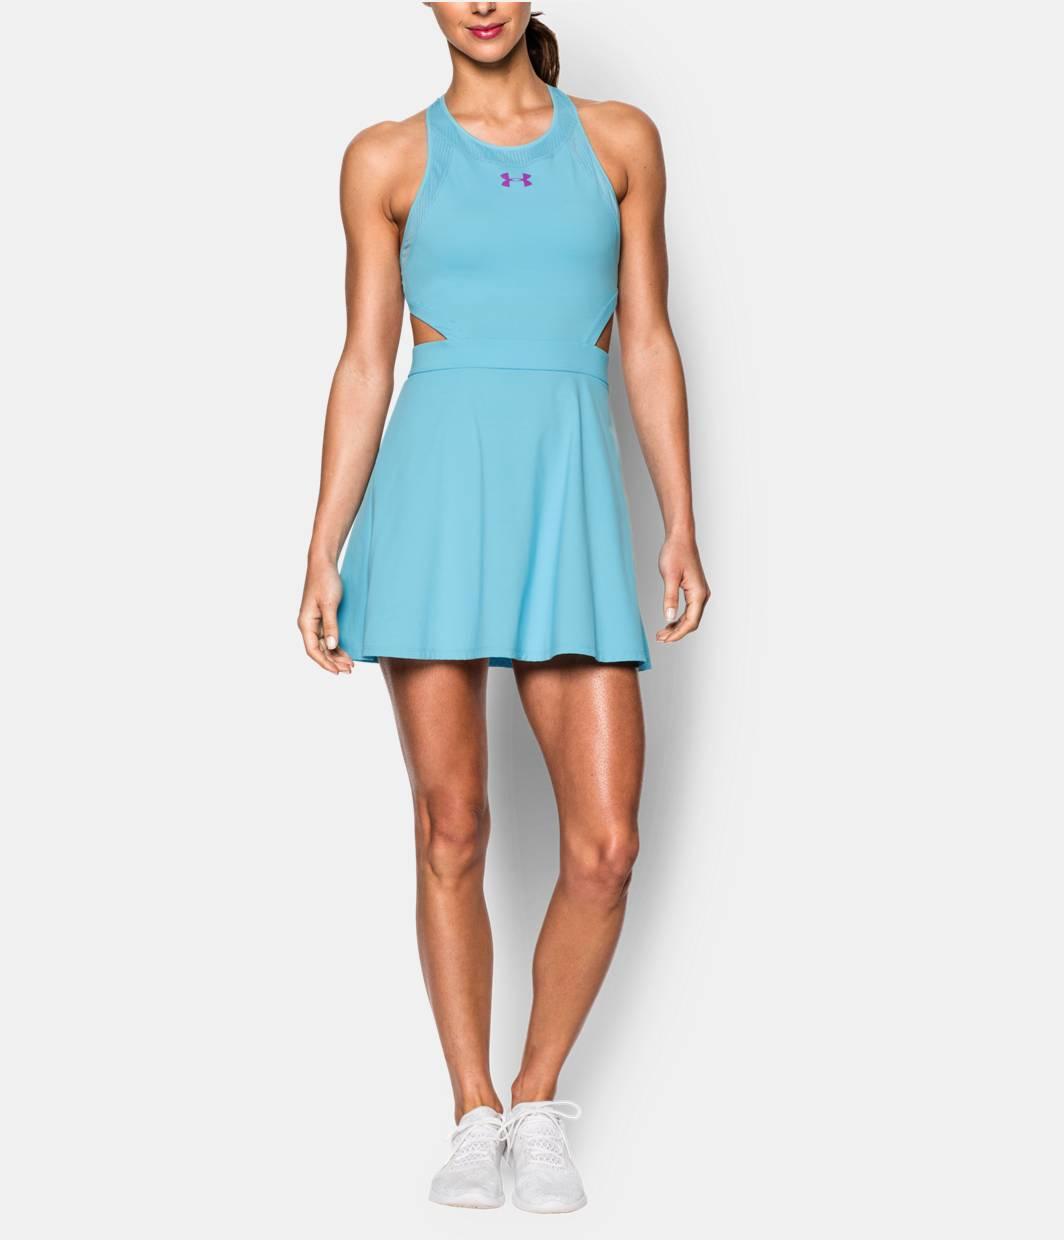 Womens Tennis Dresses